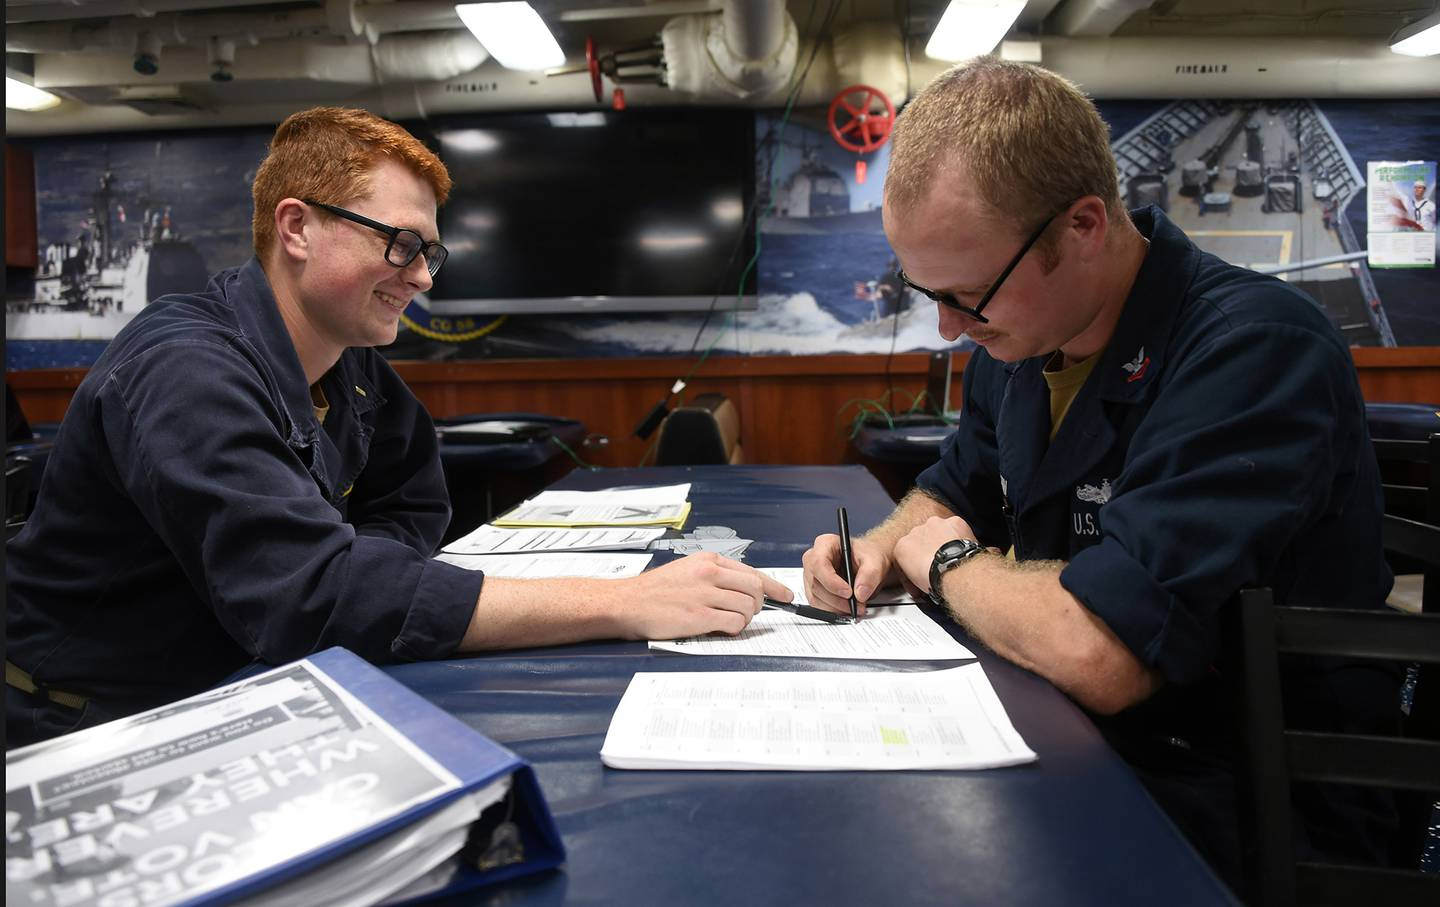 Unit Voting Assistance Officer Ensign Samuel Straub, left, assists Fire Controlman 2nd Class William Vaughn on absentee voting paperwork aboard the mess decks of the Ticonderoga-class guided-missile cruiser USS Philippine Sea (CG 58), Aug. 29, 2020.